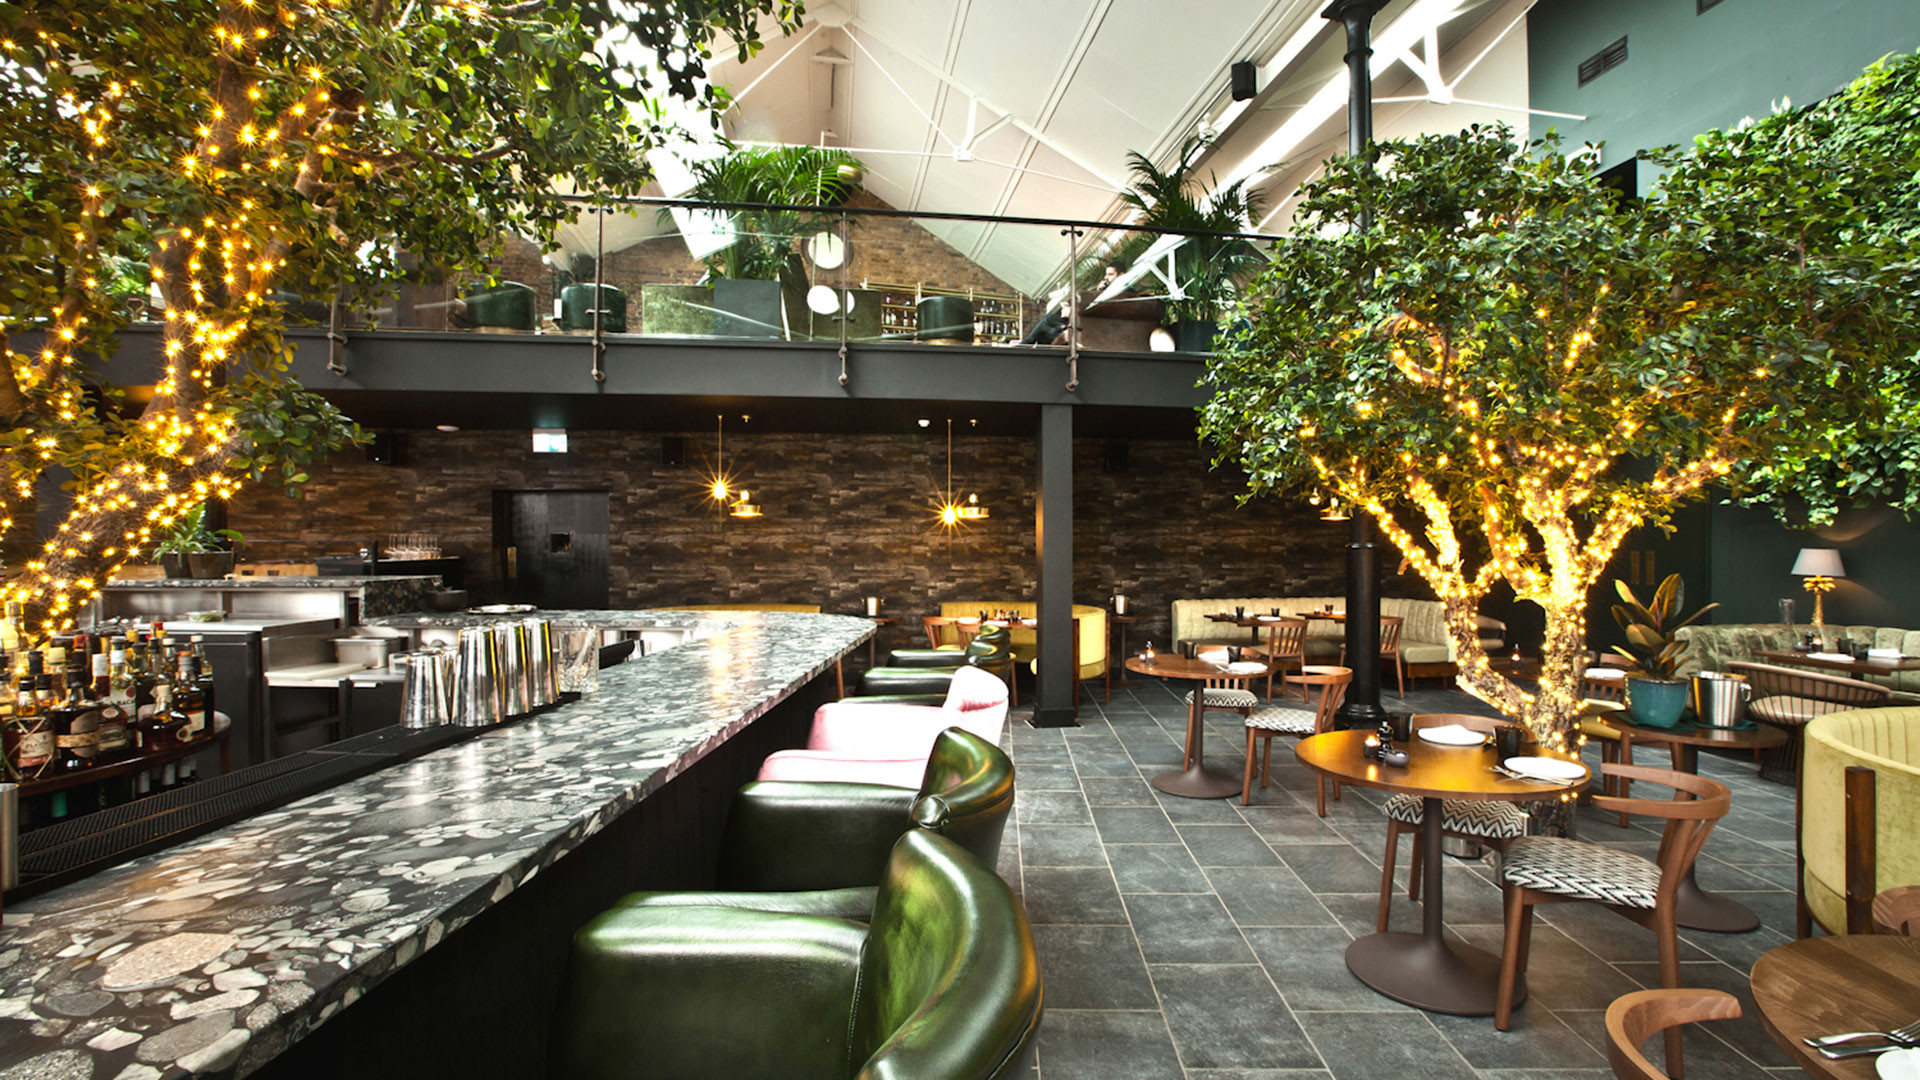 The decadent interiors at Restaurant Ours